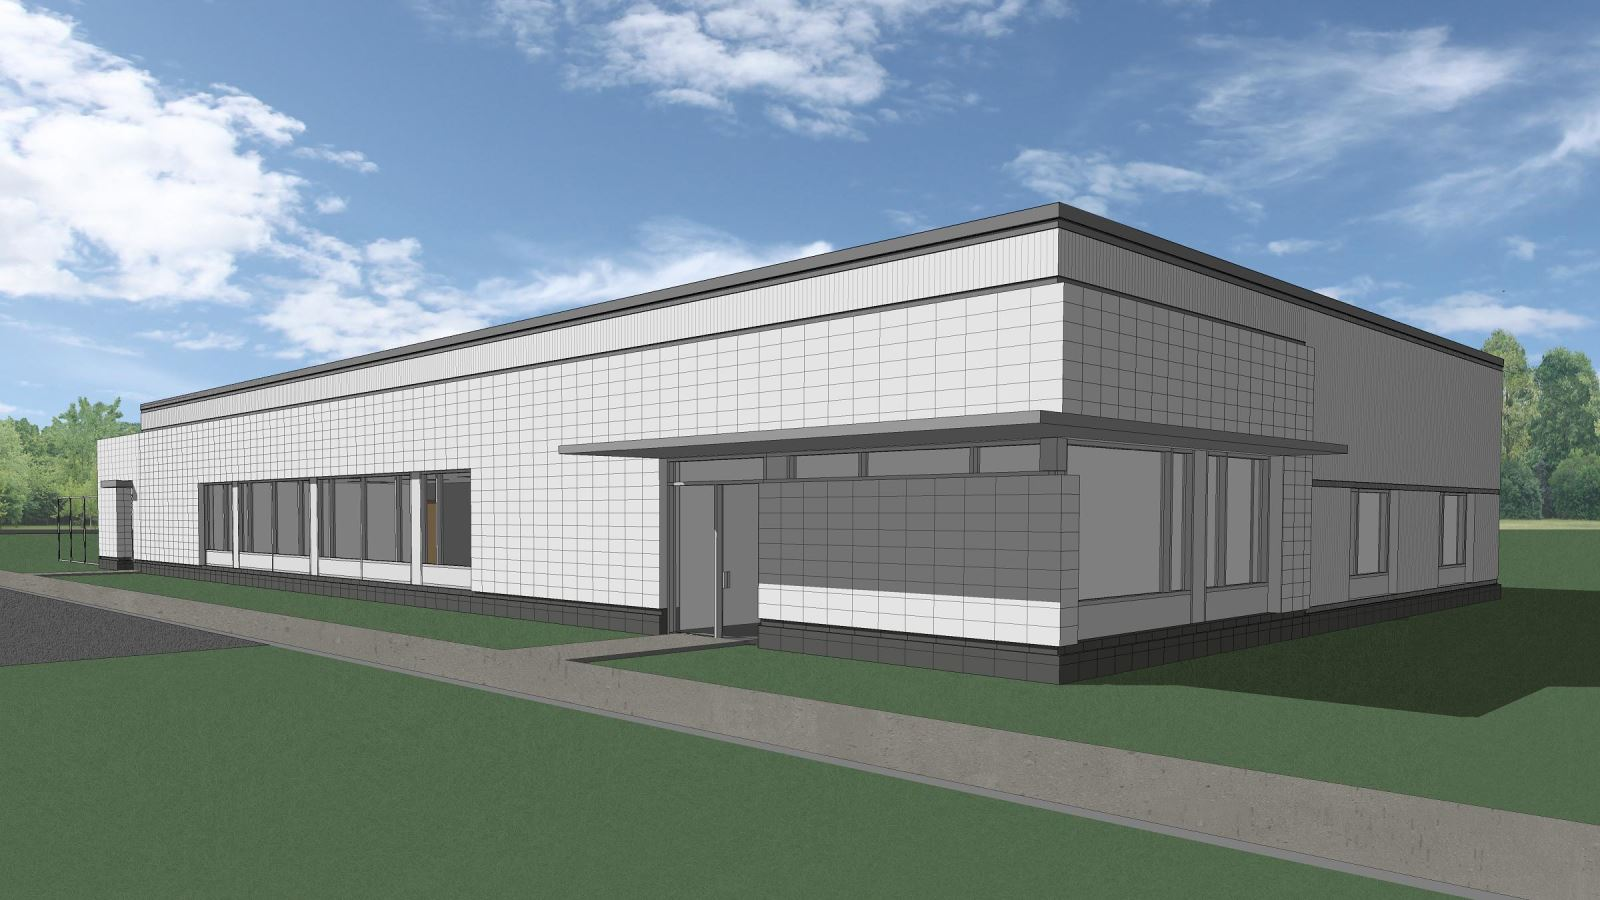 MASP & PSTA Project 3: Public Safety Training Academy - Exterior View Of The Canine Training Building